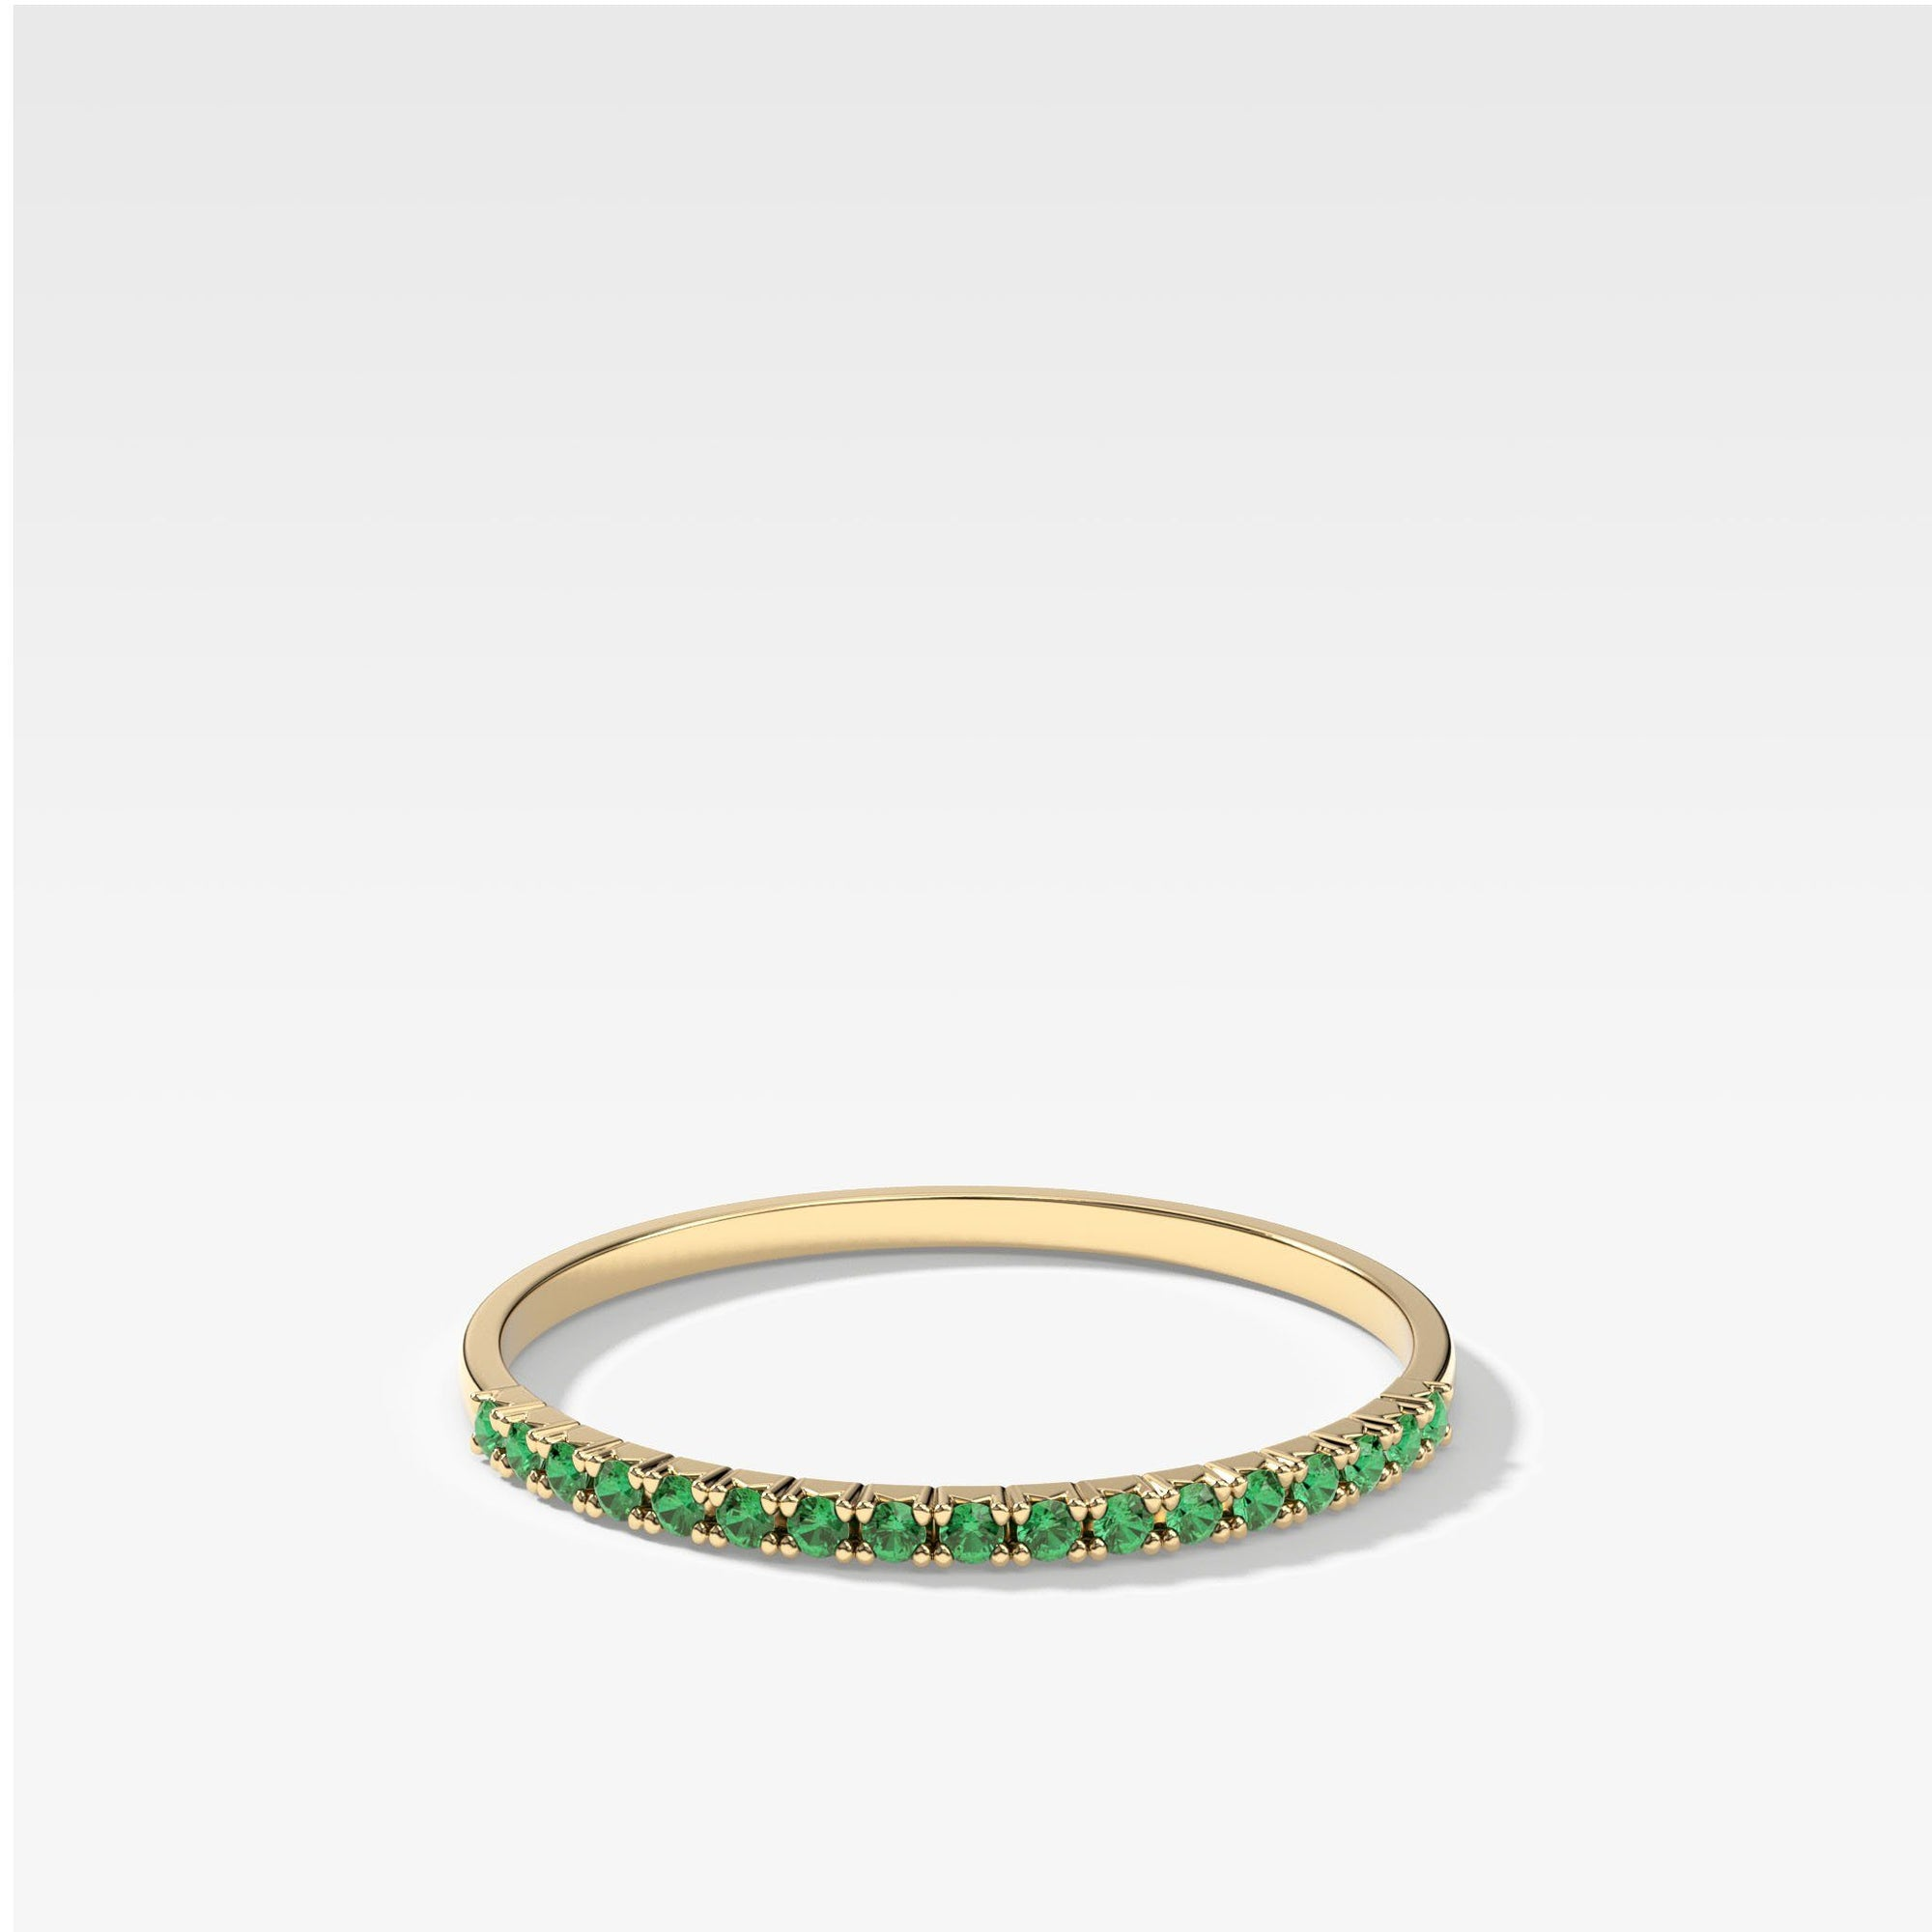 Petite French Pave Stacker With Green Emeralds In Yellow Gold By Good Stone